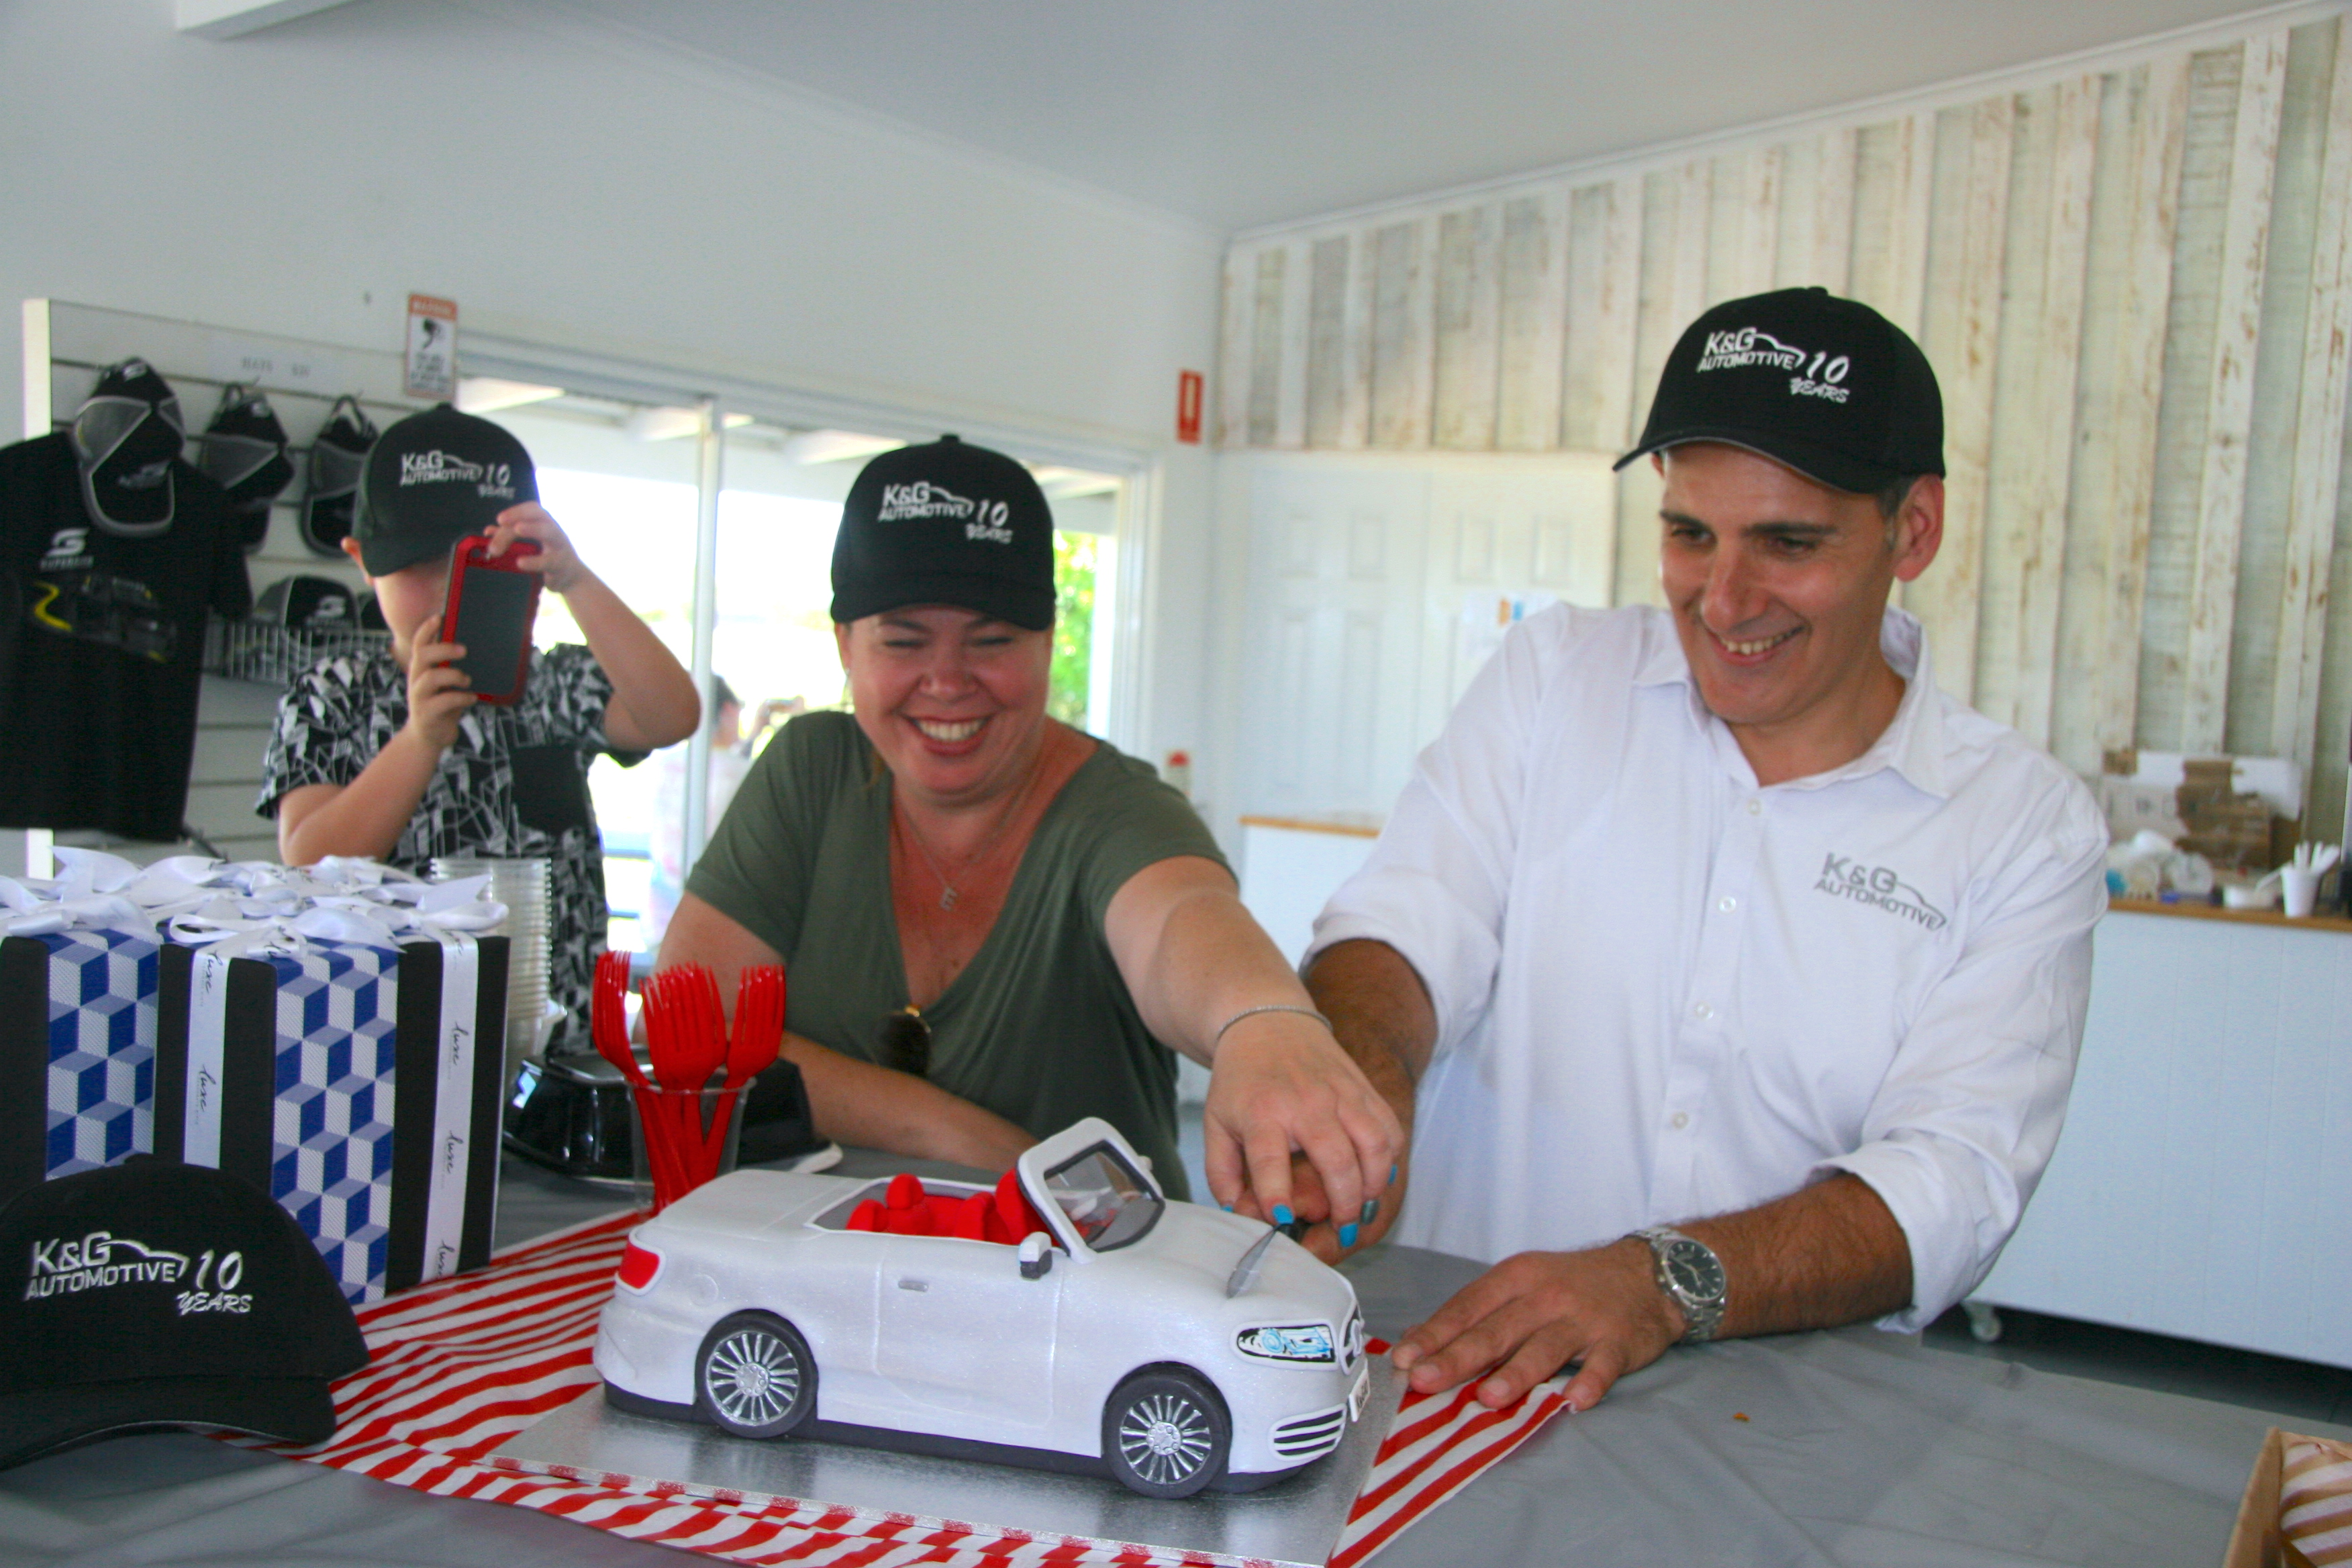 K & G Automotive Lotus Driving Experience Cake Cutting